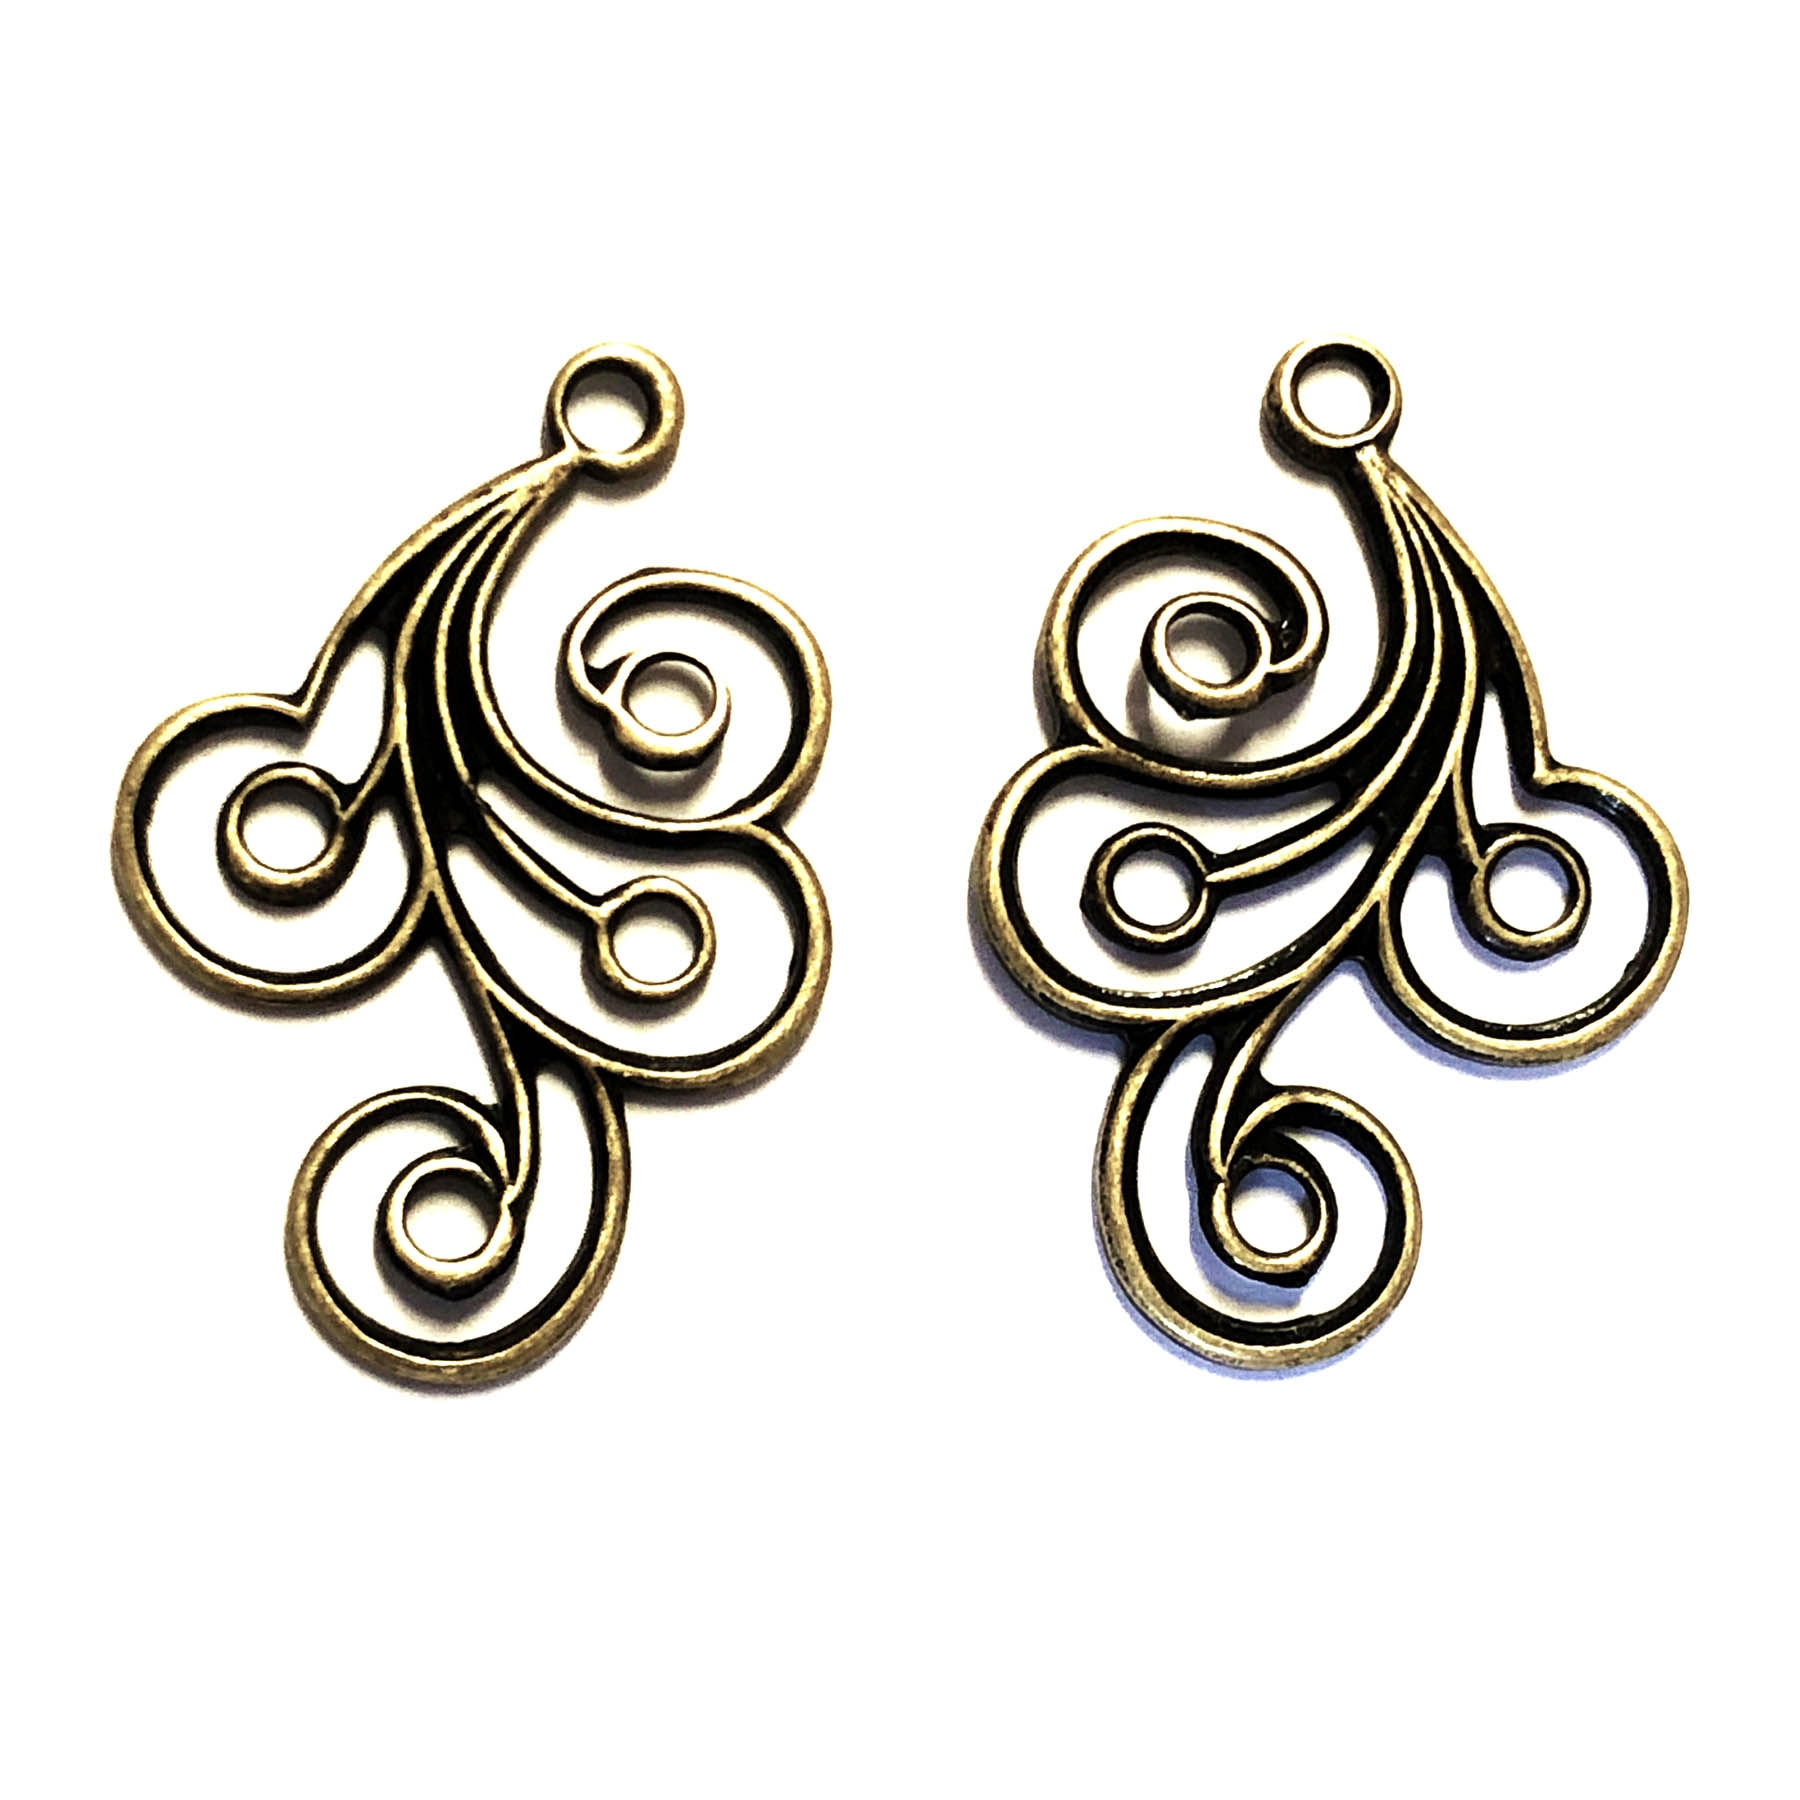 Spiral design drops, brass ox, anique brass, earrings, filigree, brass ear drops, drops, spiral design, brass filigree, earring finding, brass stamping, 30 x 21mm, 2 pieces, us made, nickel free, jewelry making, jewelry finding, vintage supplies, 02175